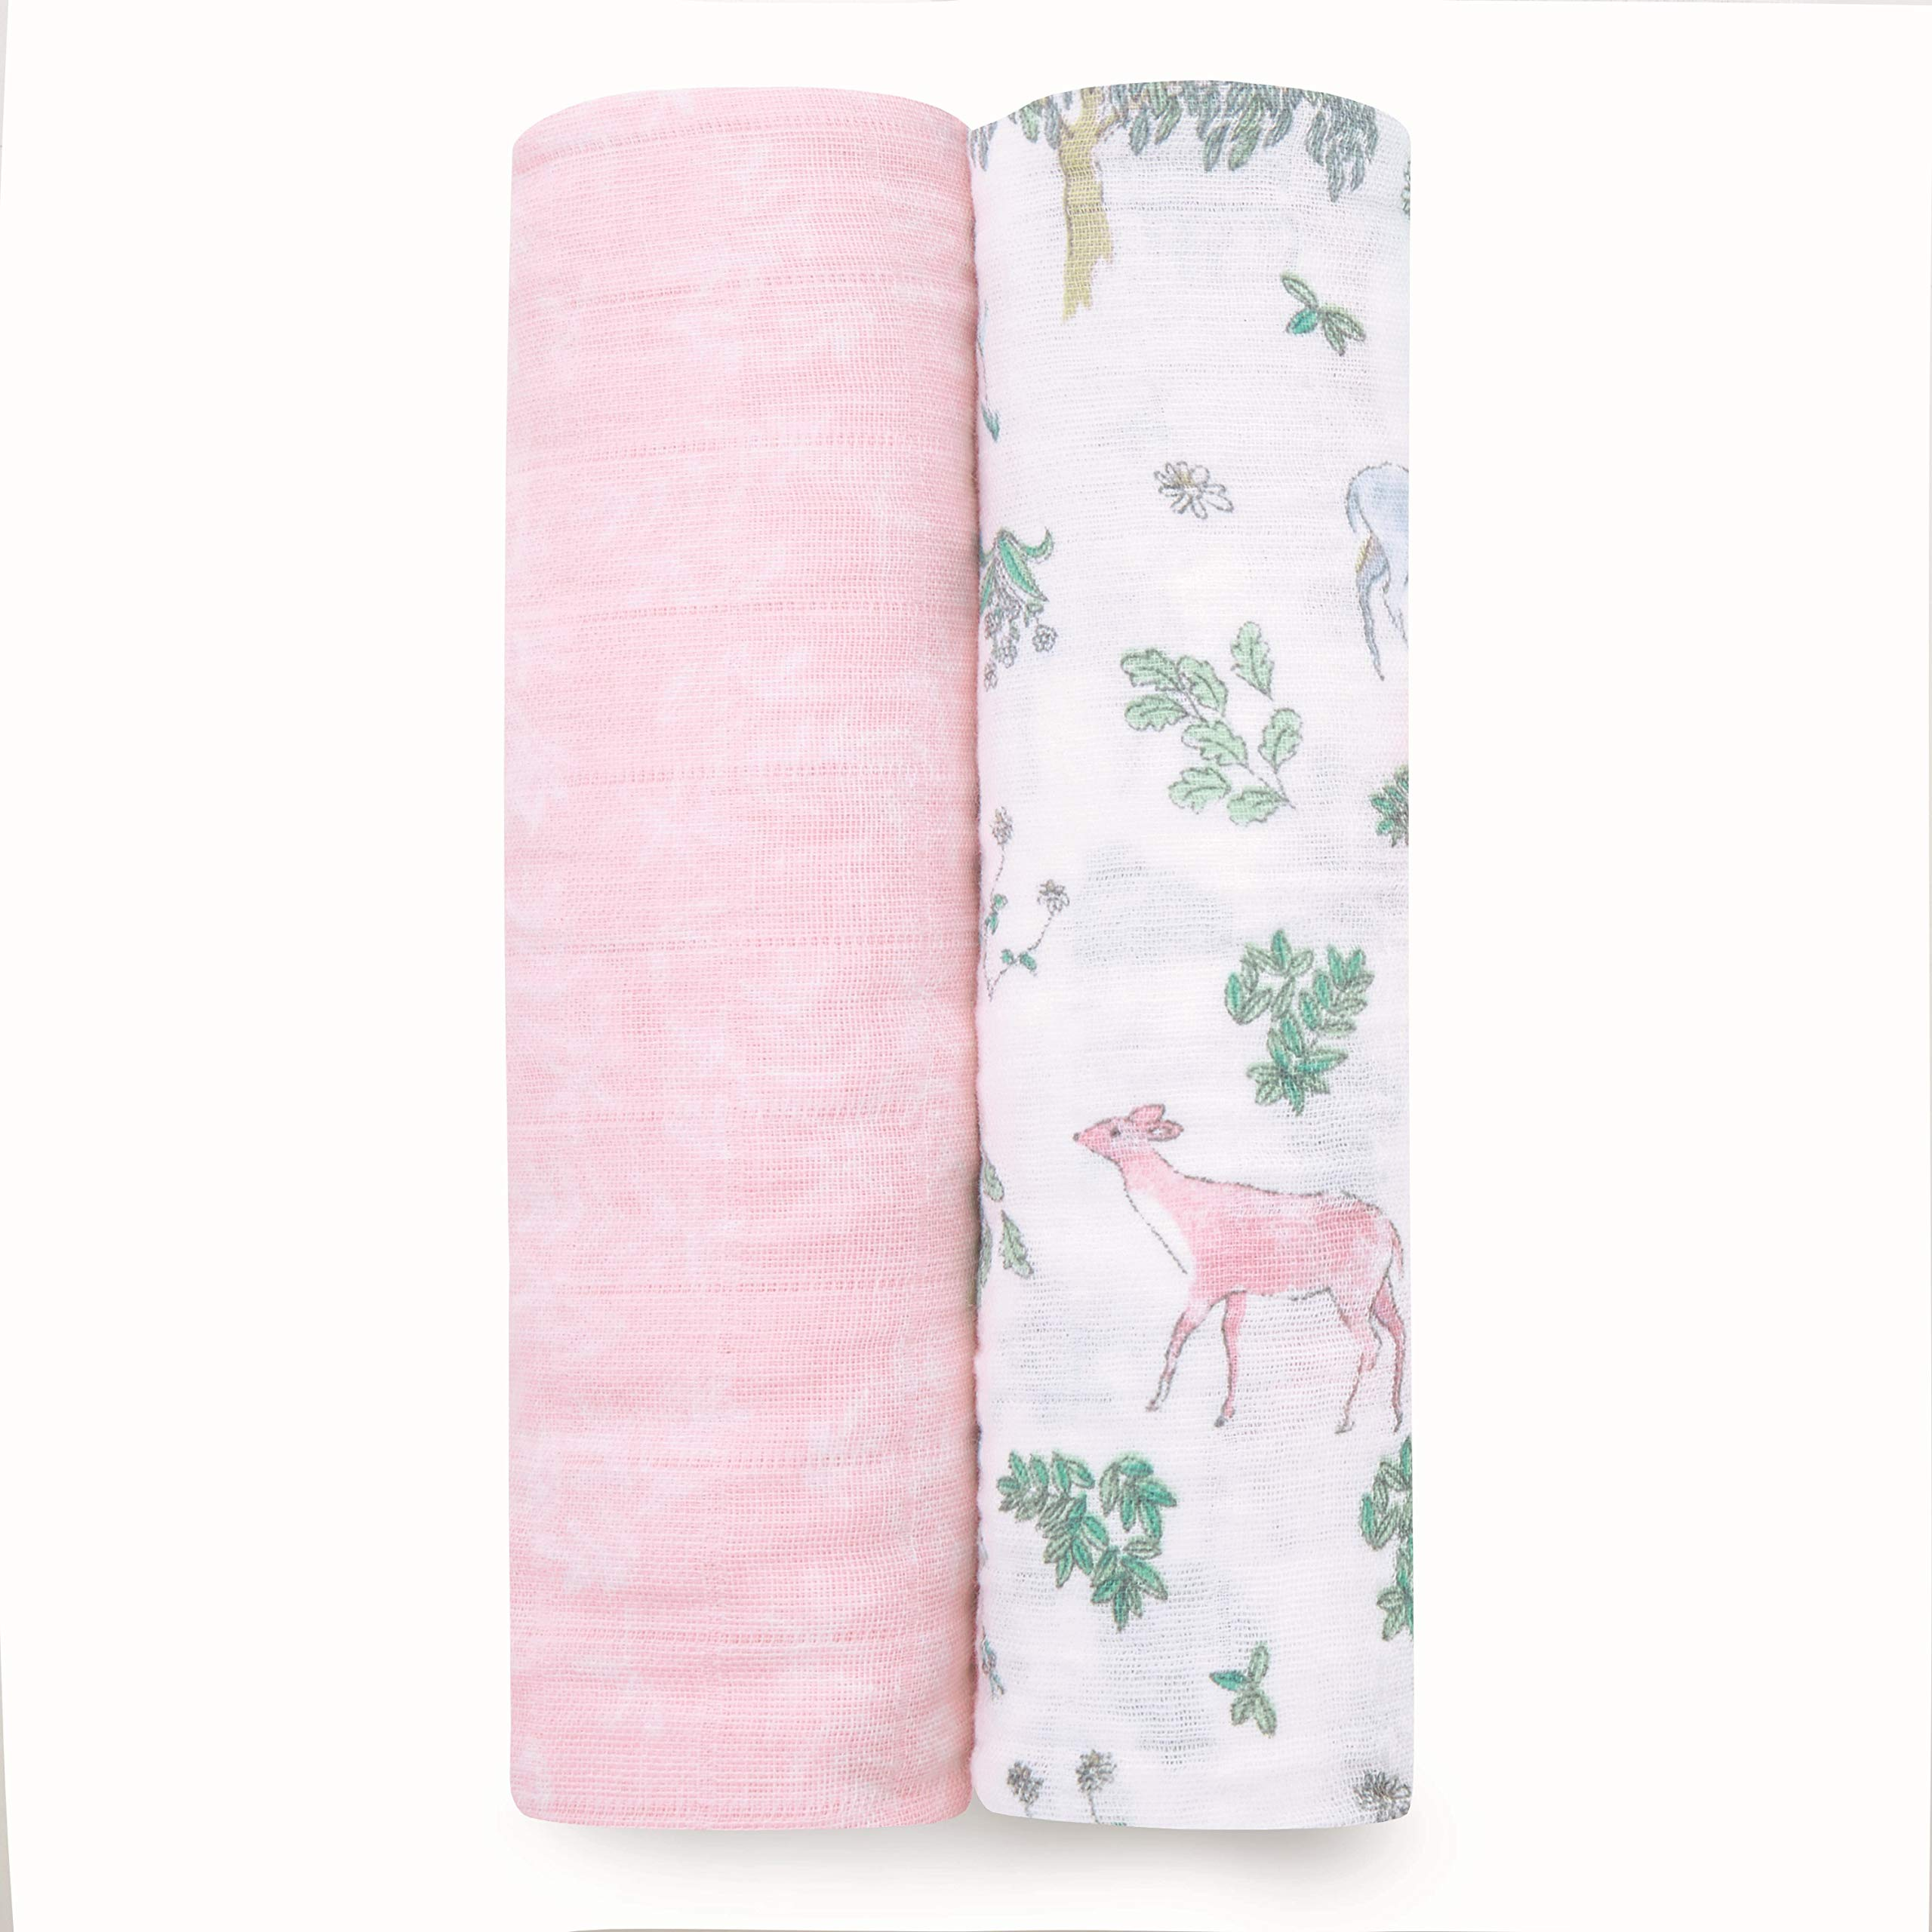 aden + anais Swaddle Blanket | Boutique Muslin Blankets for Girls & Boys | Baby Receiving Swaddles | Ideal Newborn & Infant Swaddling Set | Perfect Shower Gifts, 2 Pack, Forest Fantasy